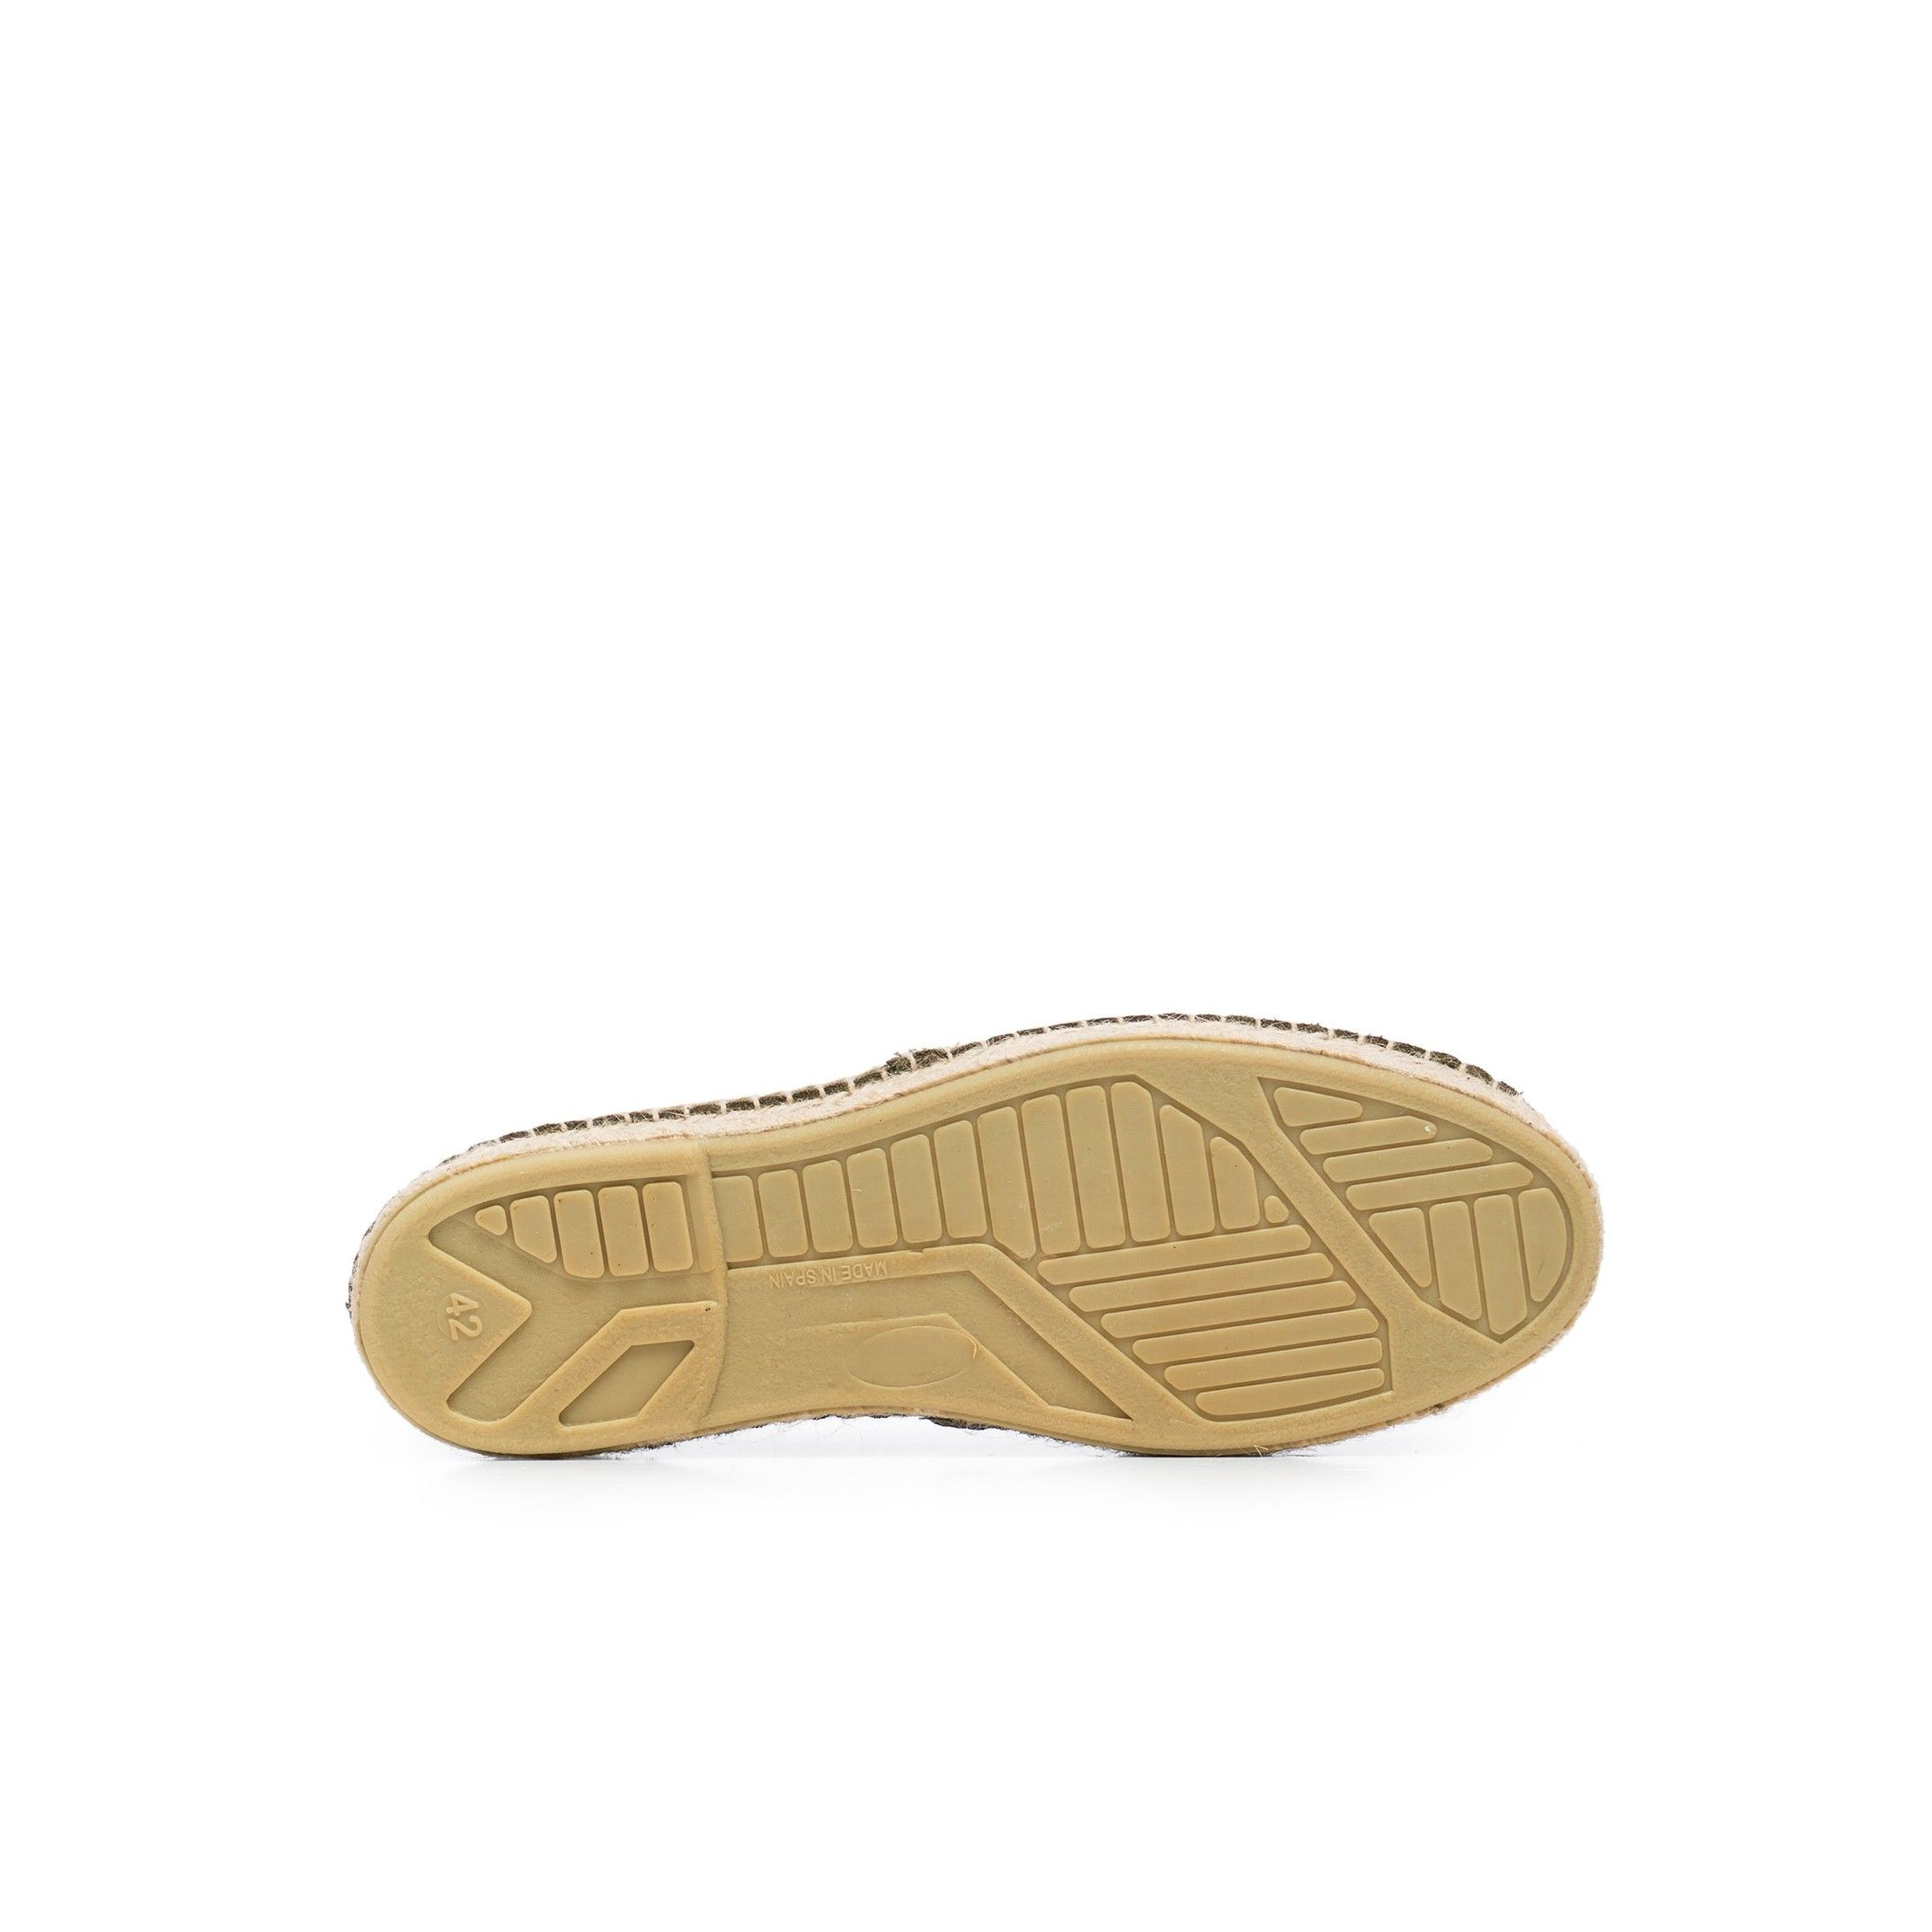 Flat Espadrilles for Men Tassels